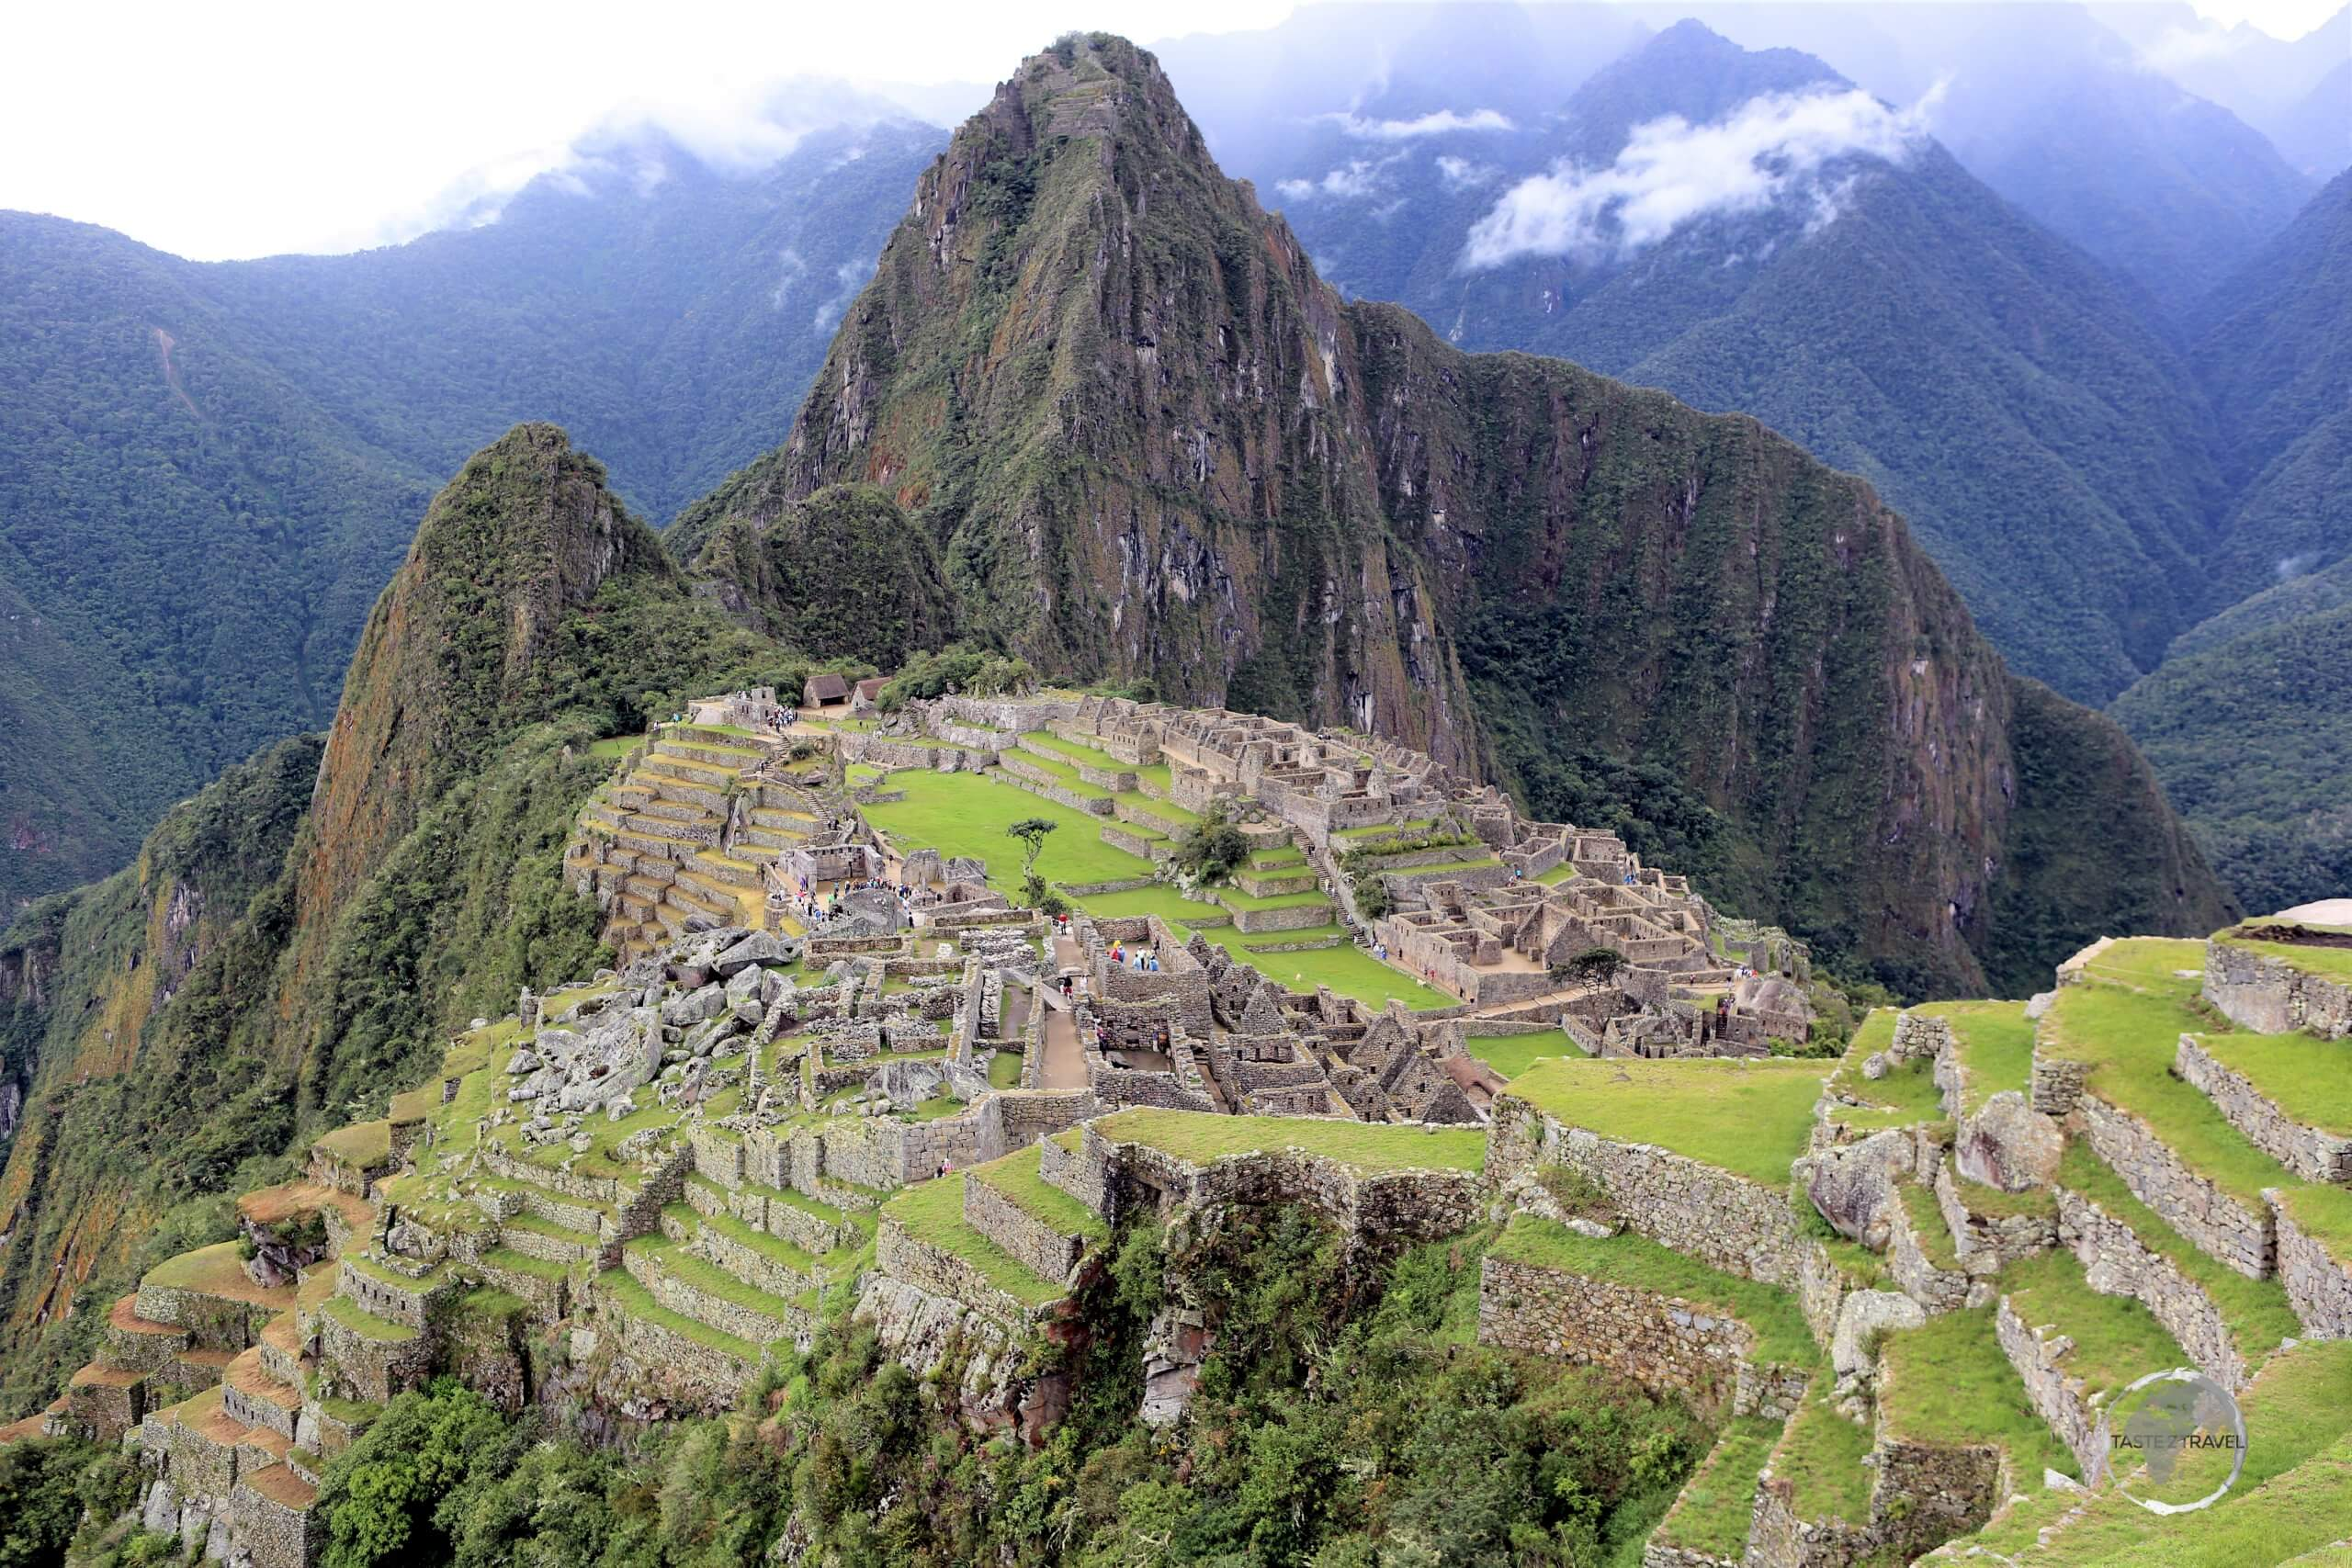 There are 2 levels of Inca-built terraces in Machu Picchu, with 45-upper and 80-lower terraces, all of which are fed by aqueducts and once supported agriculture.